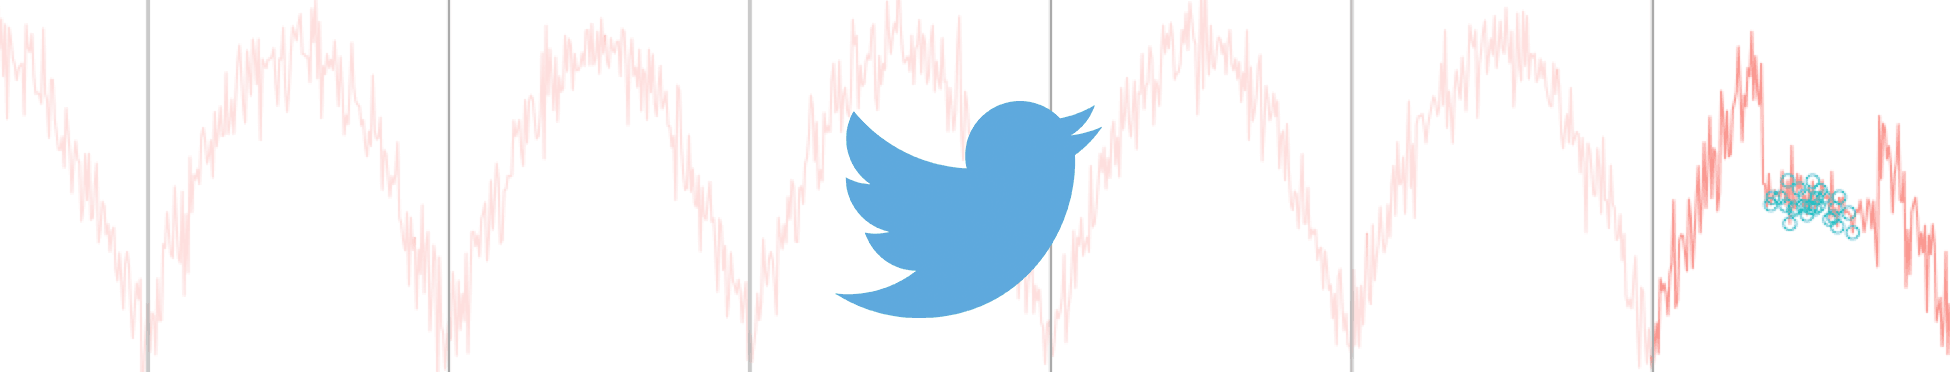 anomaly detection at Twitter